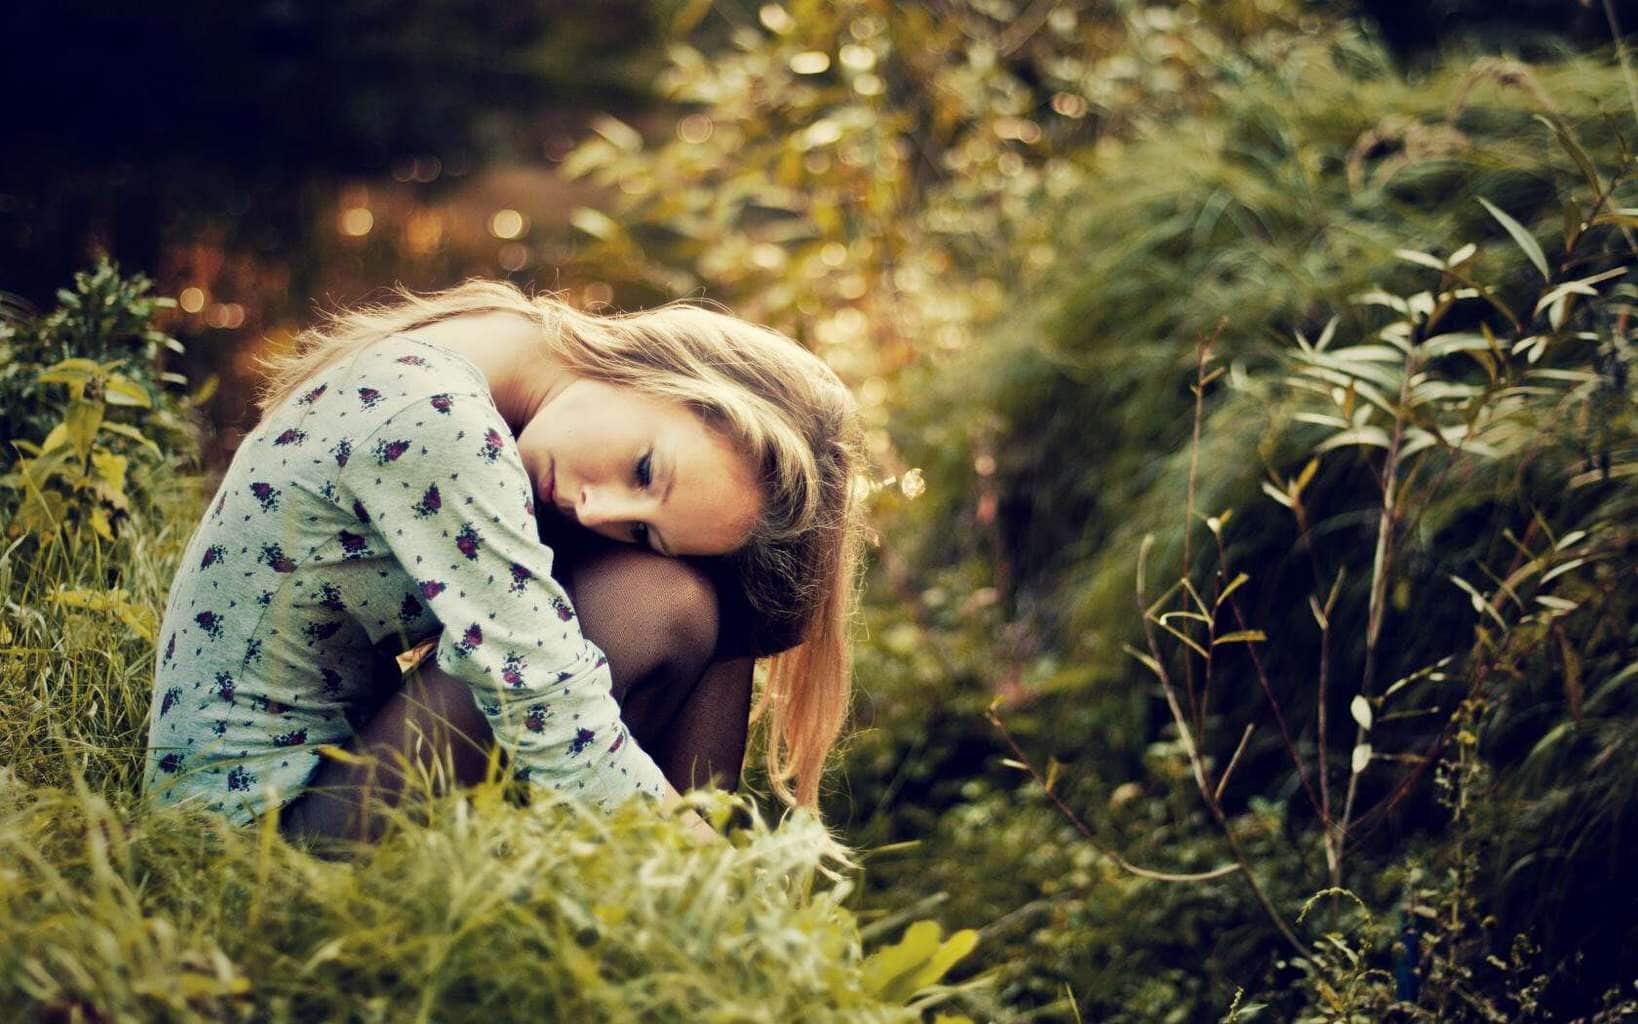 wallpaper-hd-sad-girl-sitting-over-green-grass-sadness-lovesove